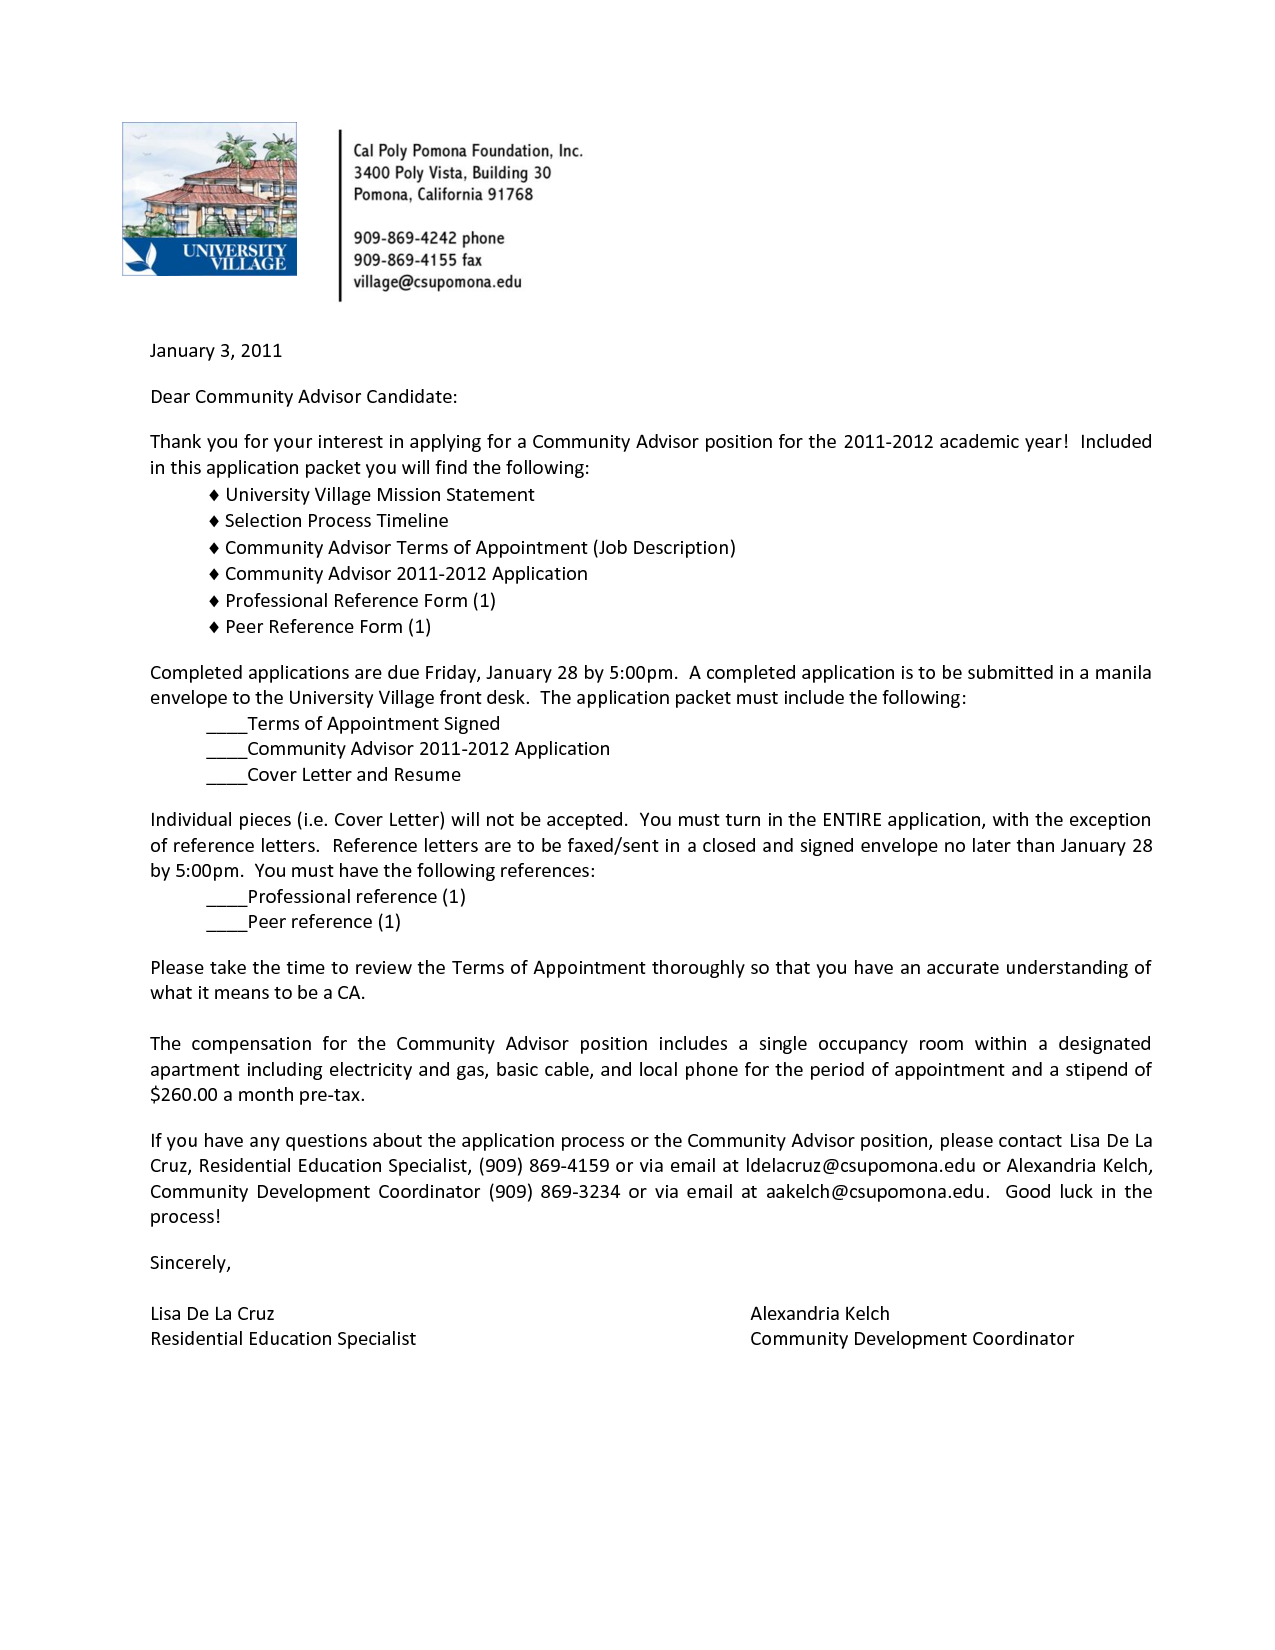 Cover letter examples for paraeducator httpresumecareer cover letter examples for paraeducator httpresumecareerfo madrichimfo Images